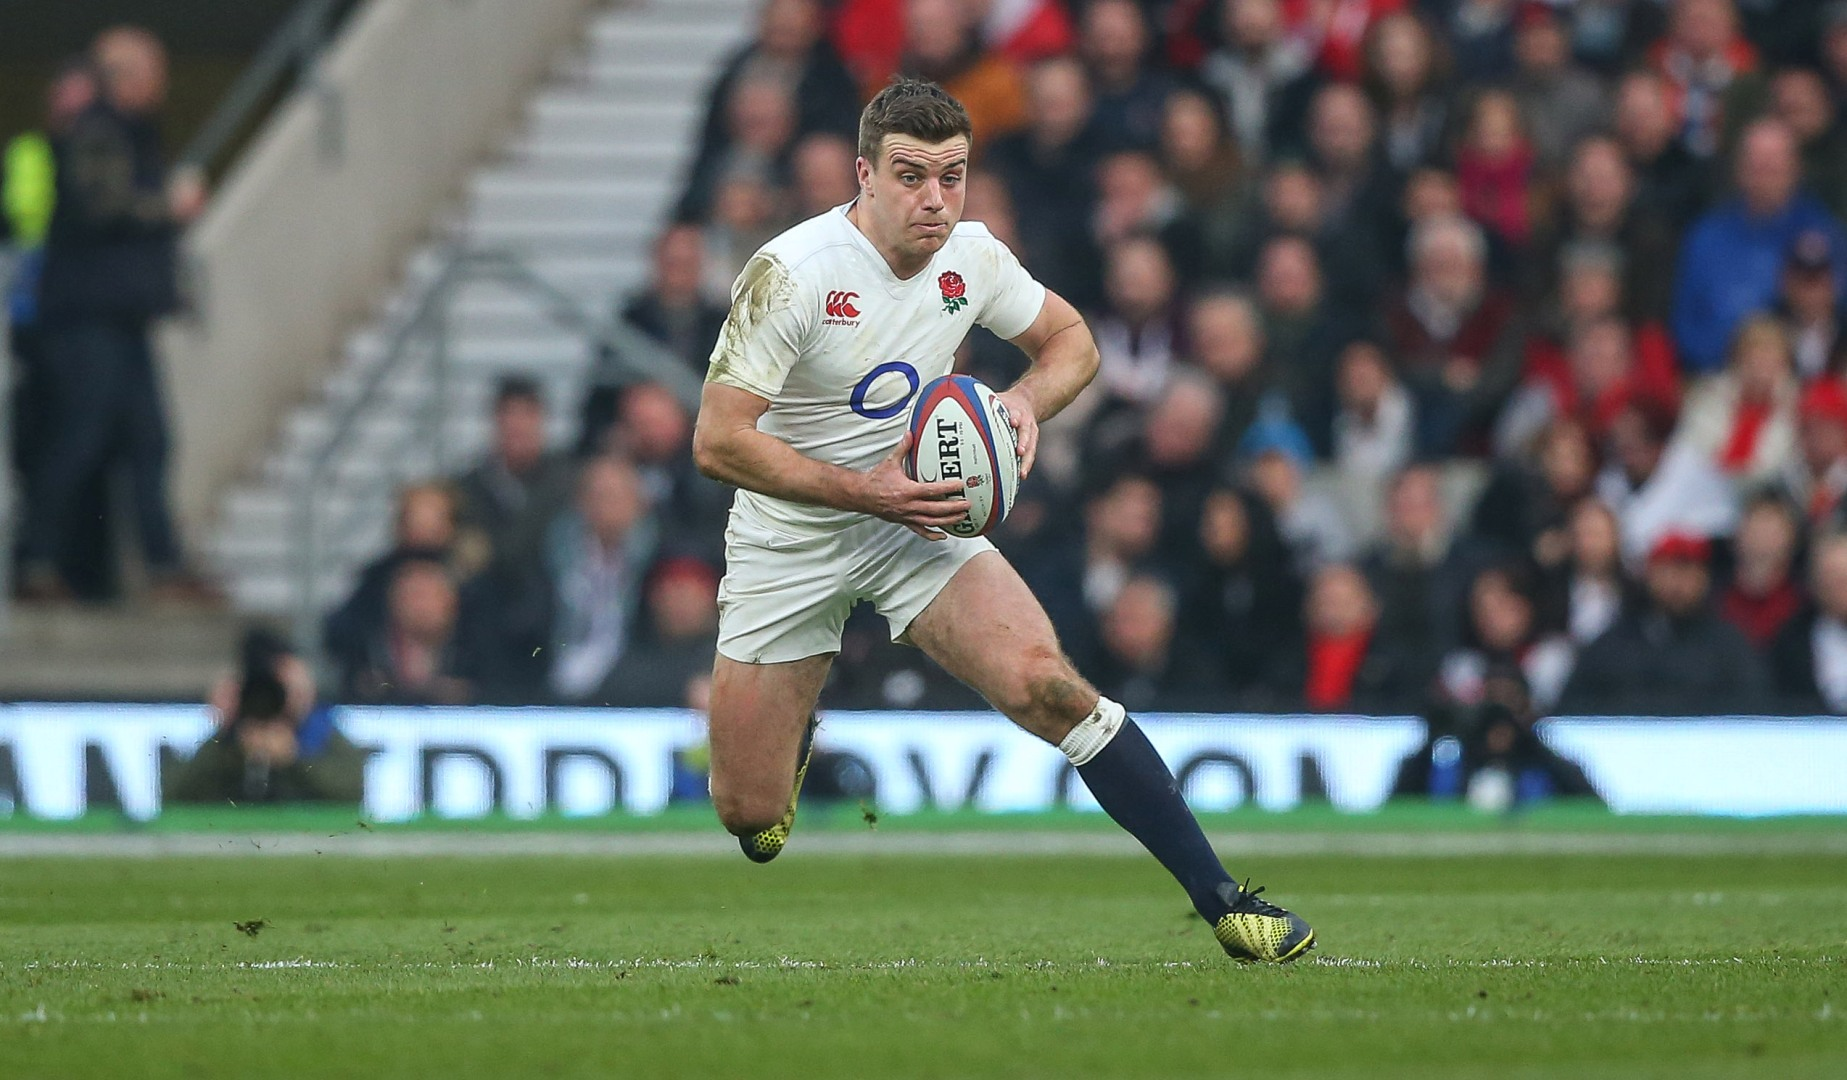 Lionswatch: Ford and Hartley agree England have work to do